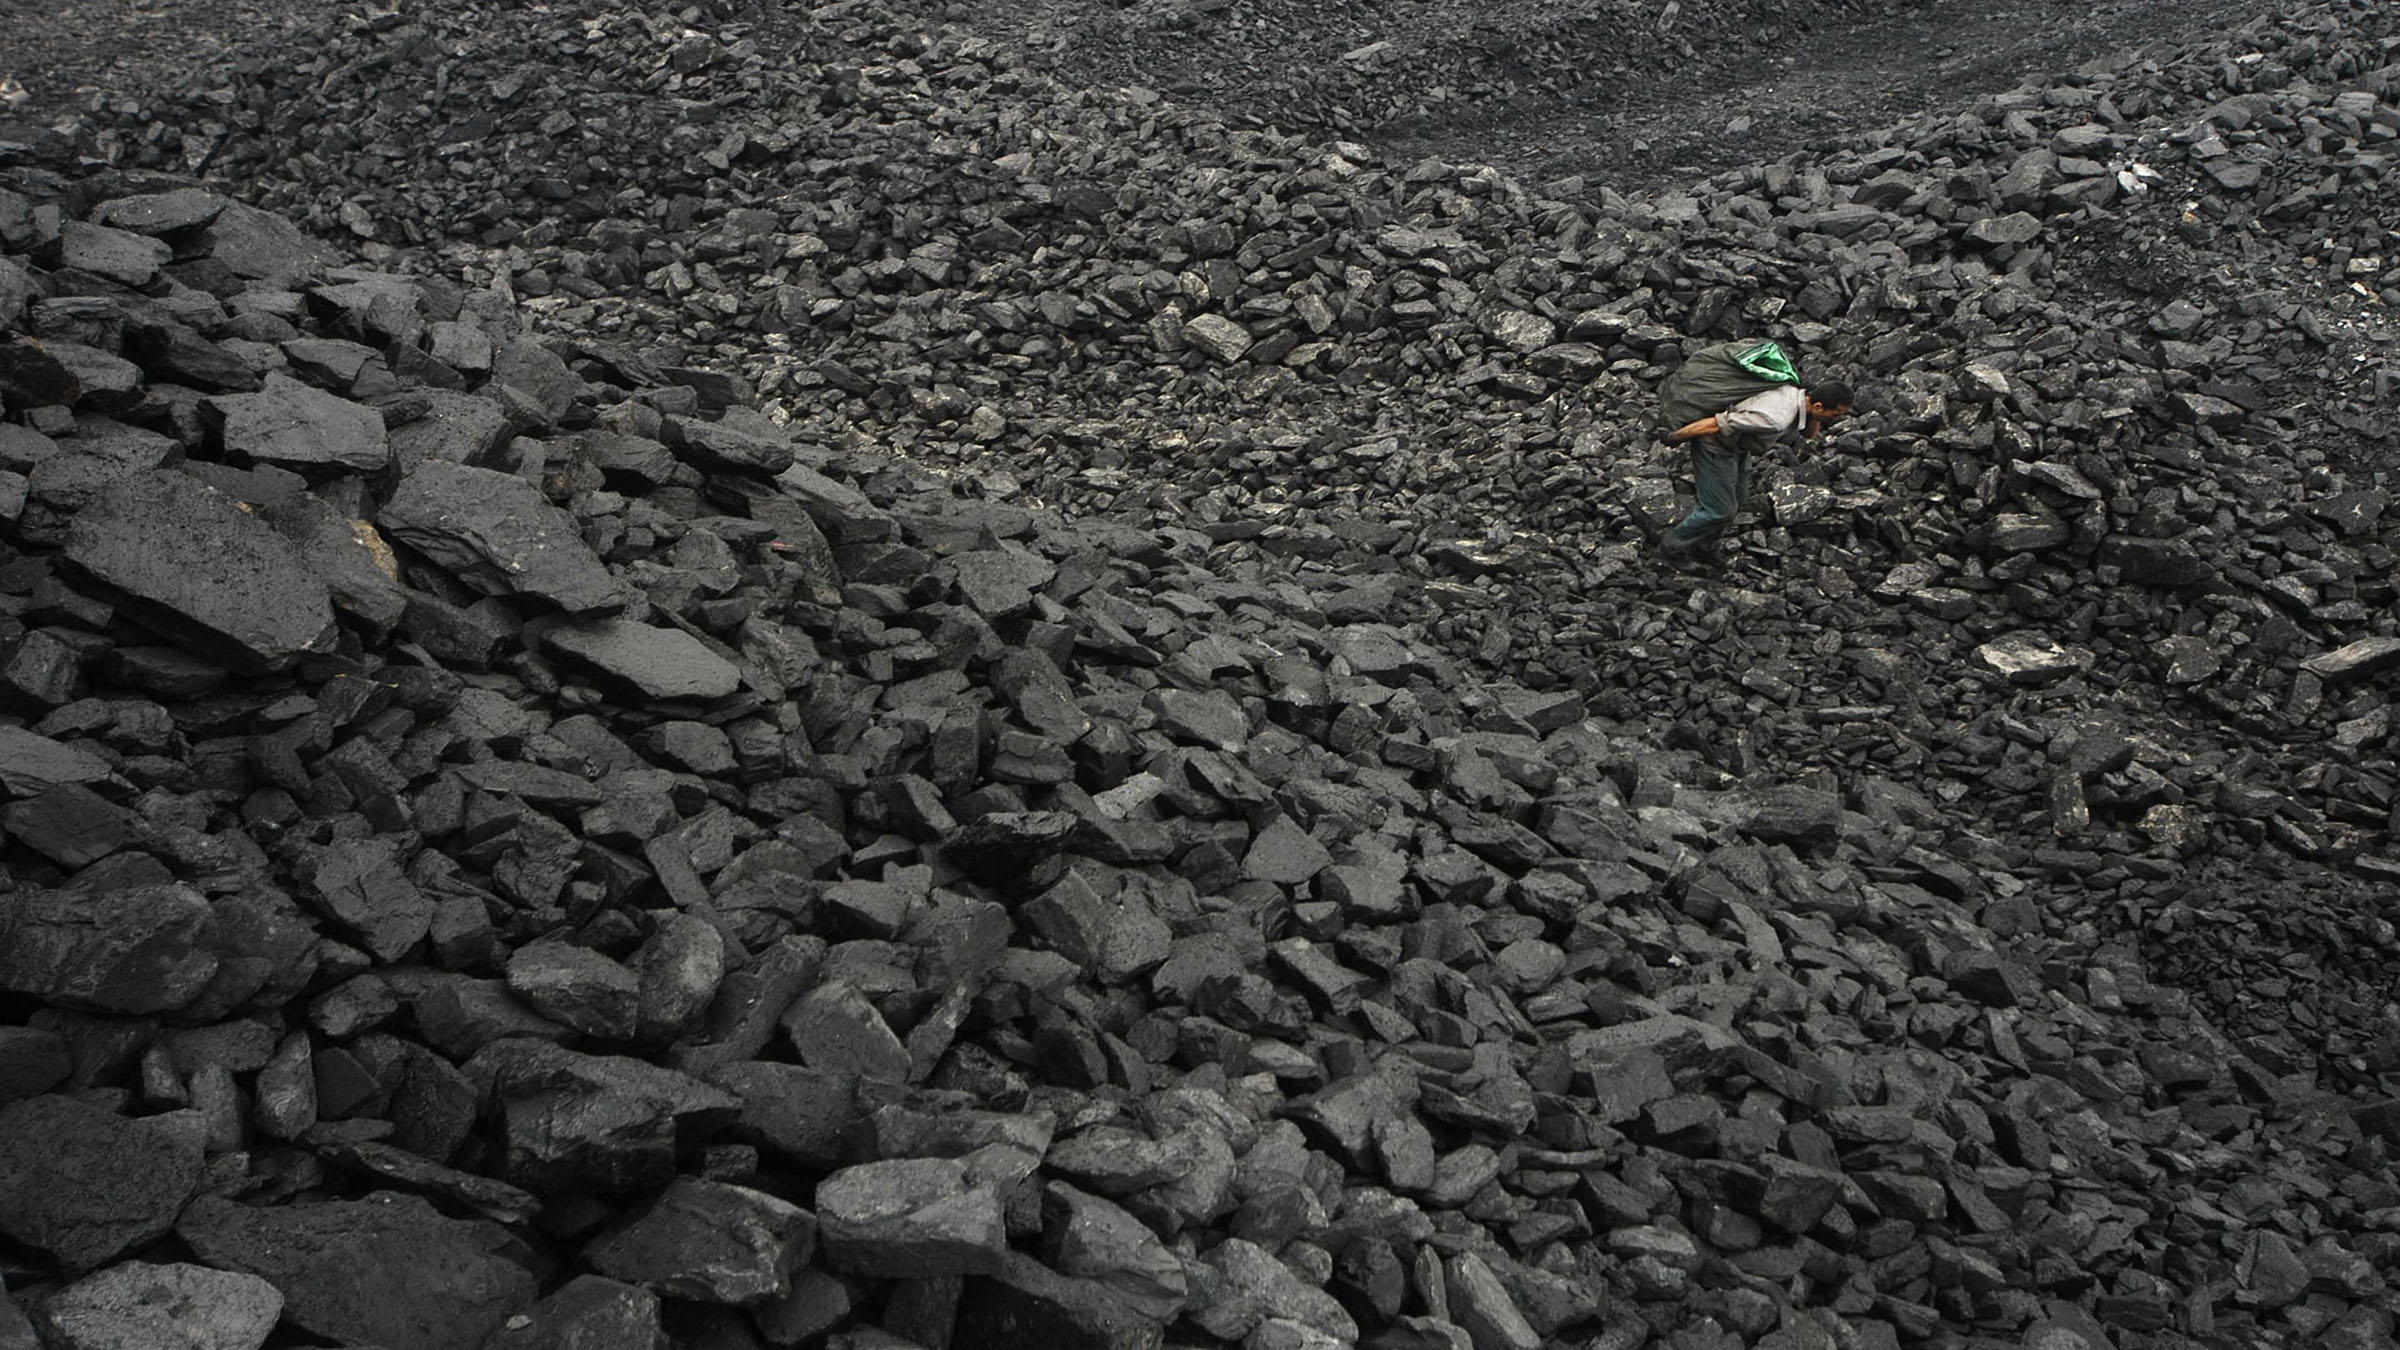 A labourer looks for usable coal at a cinder dump site on the outskirts of Changzhi, north China's Shanxi province August 10, 2007.